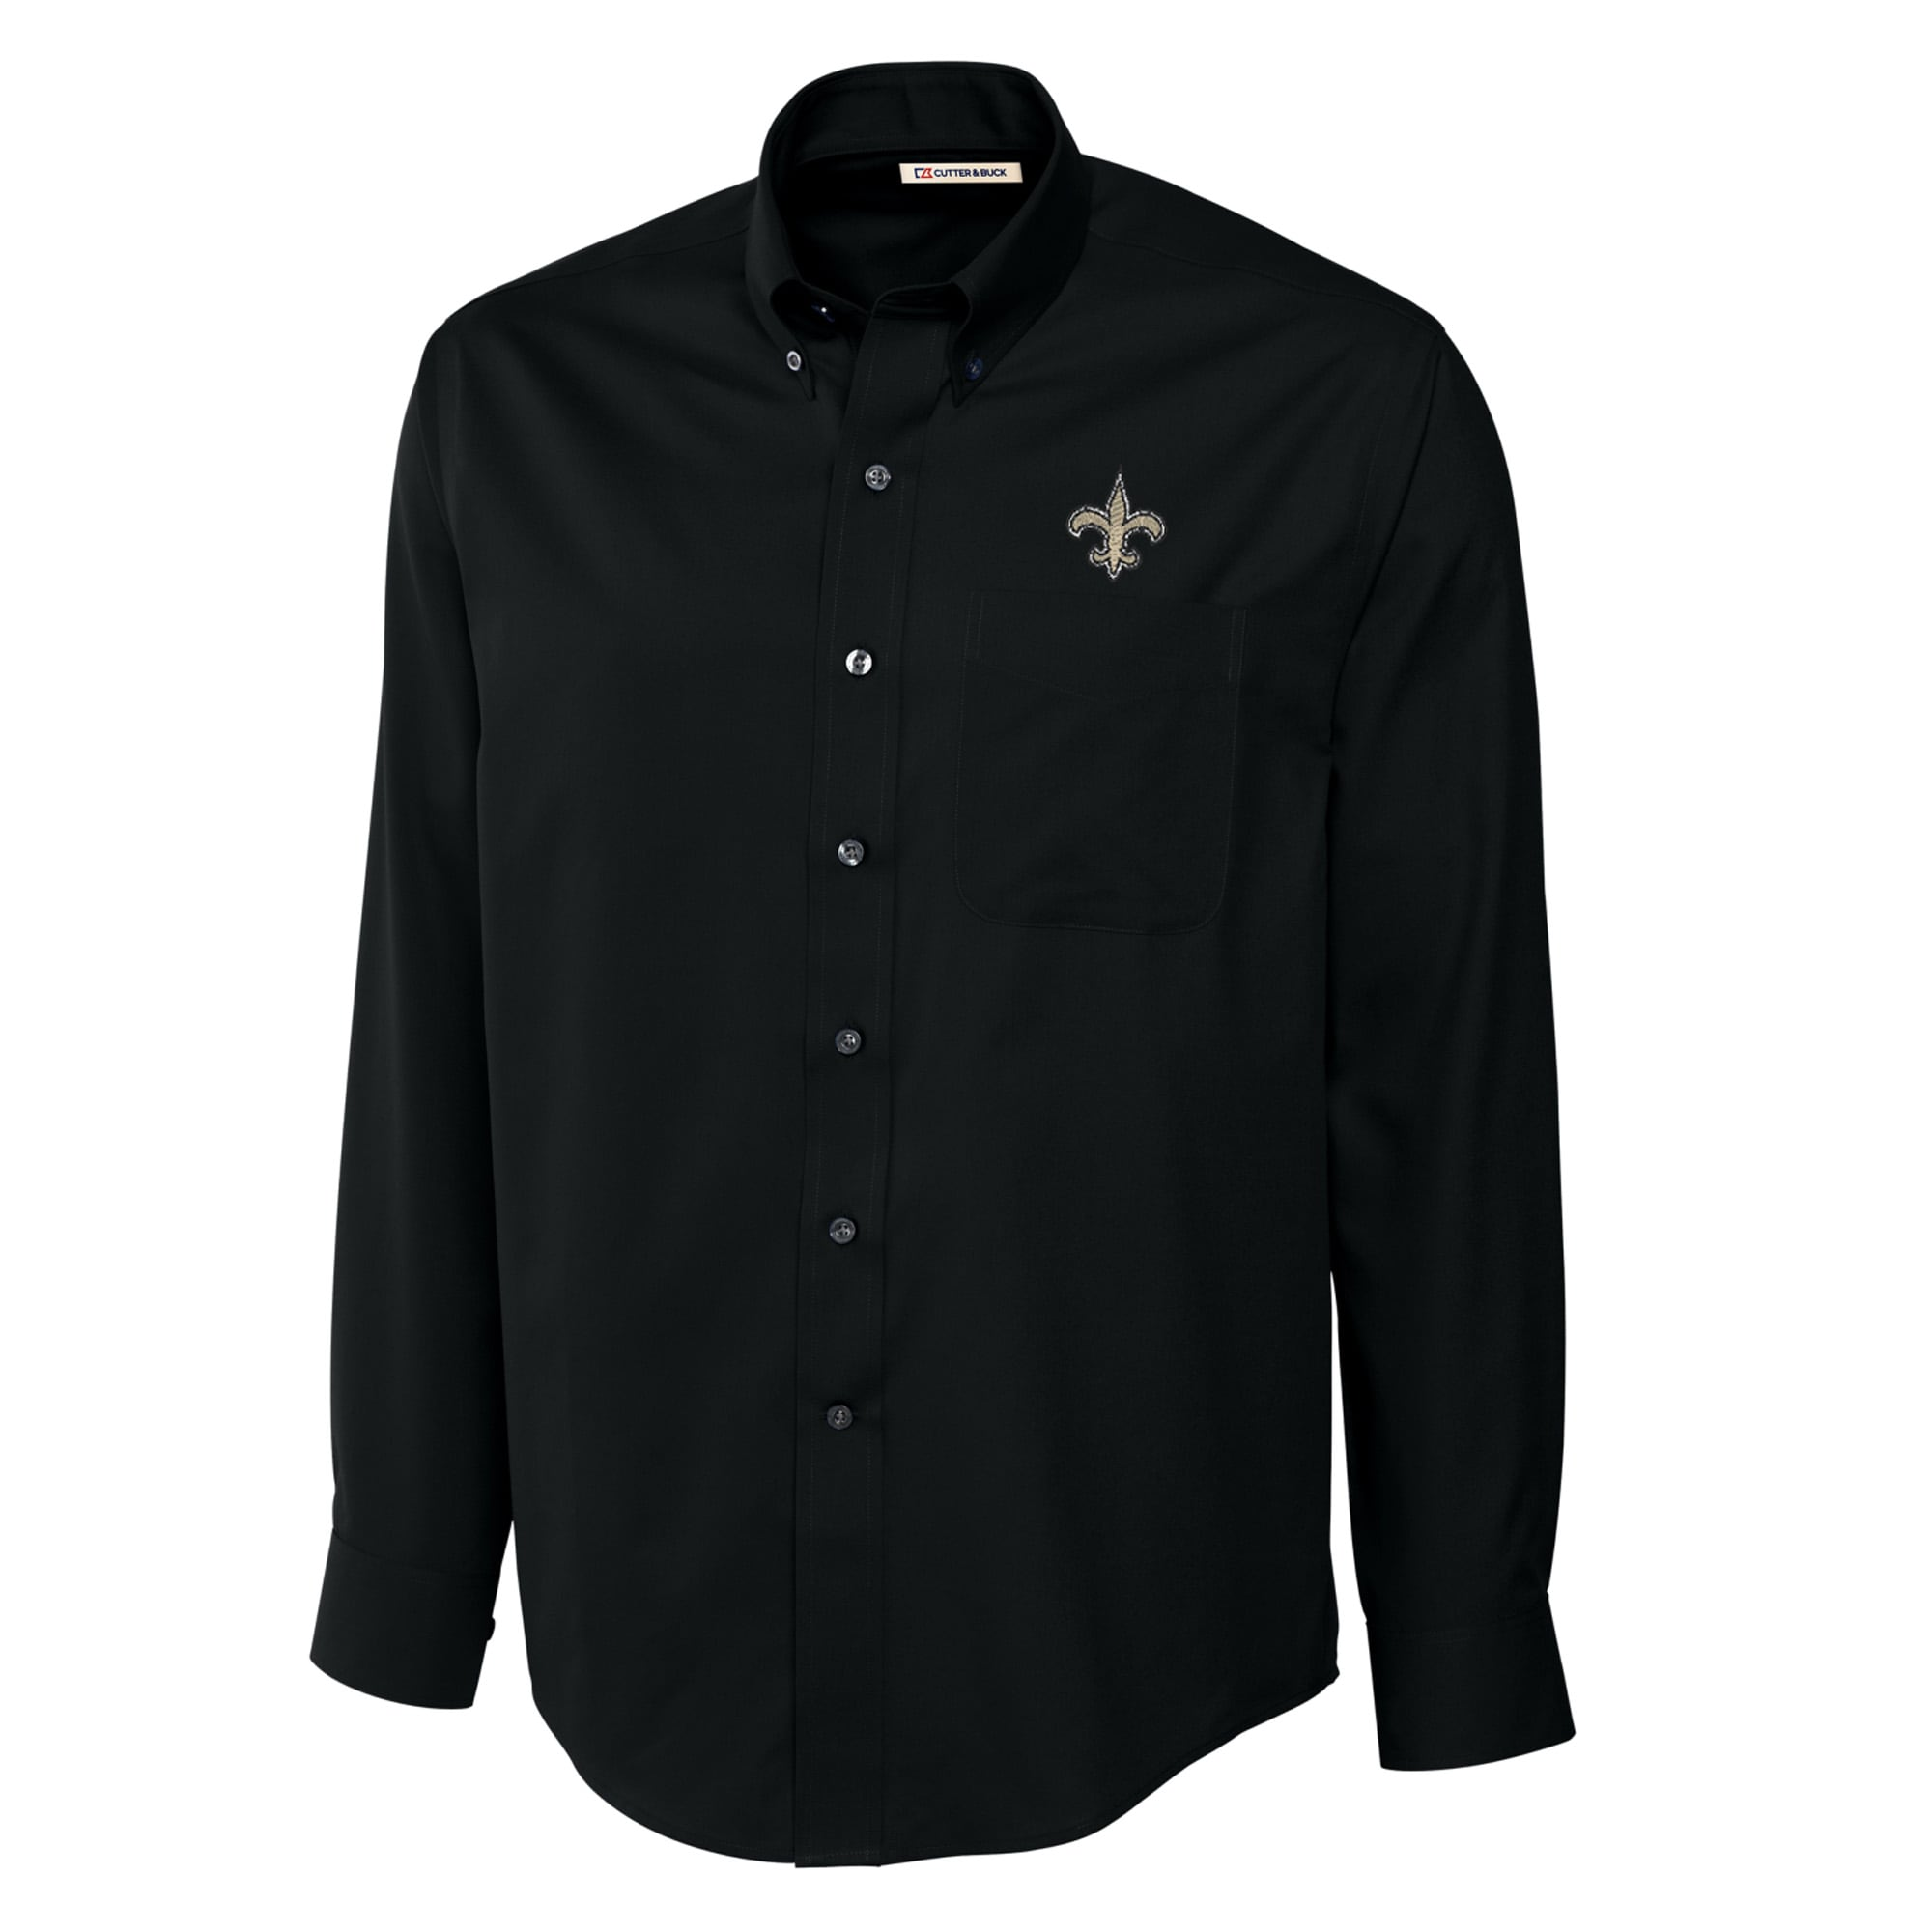 New Orleans Saints Cutter & Buck Big & Tall Epic Easy Care Woven Long Sleeve Shirt - Black